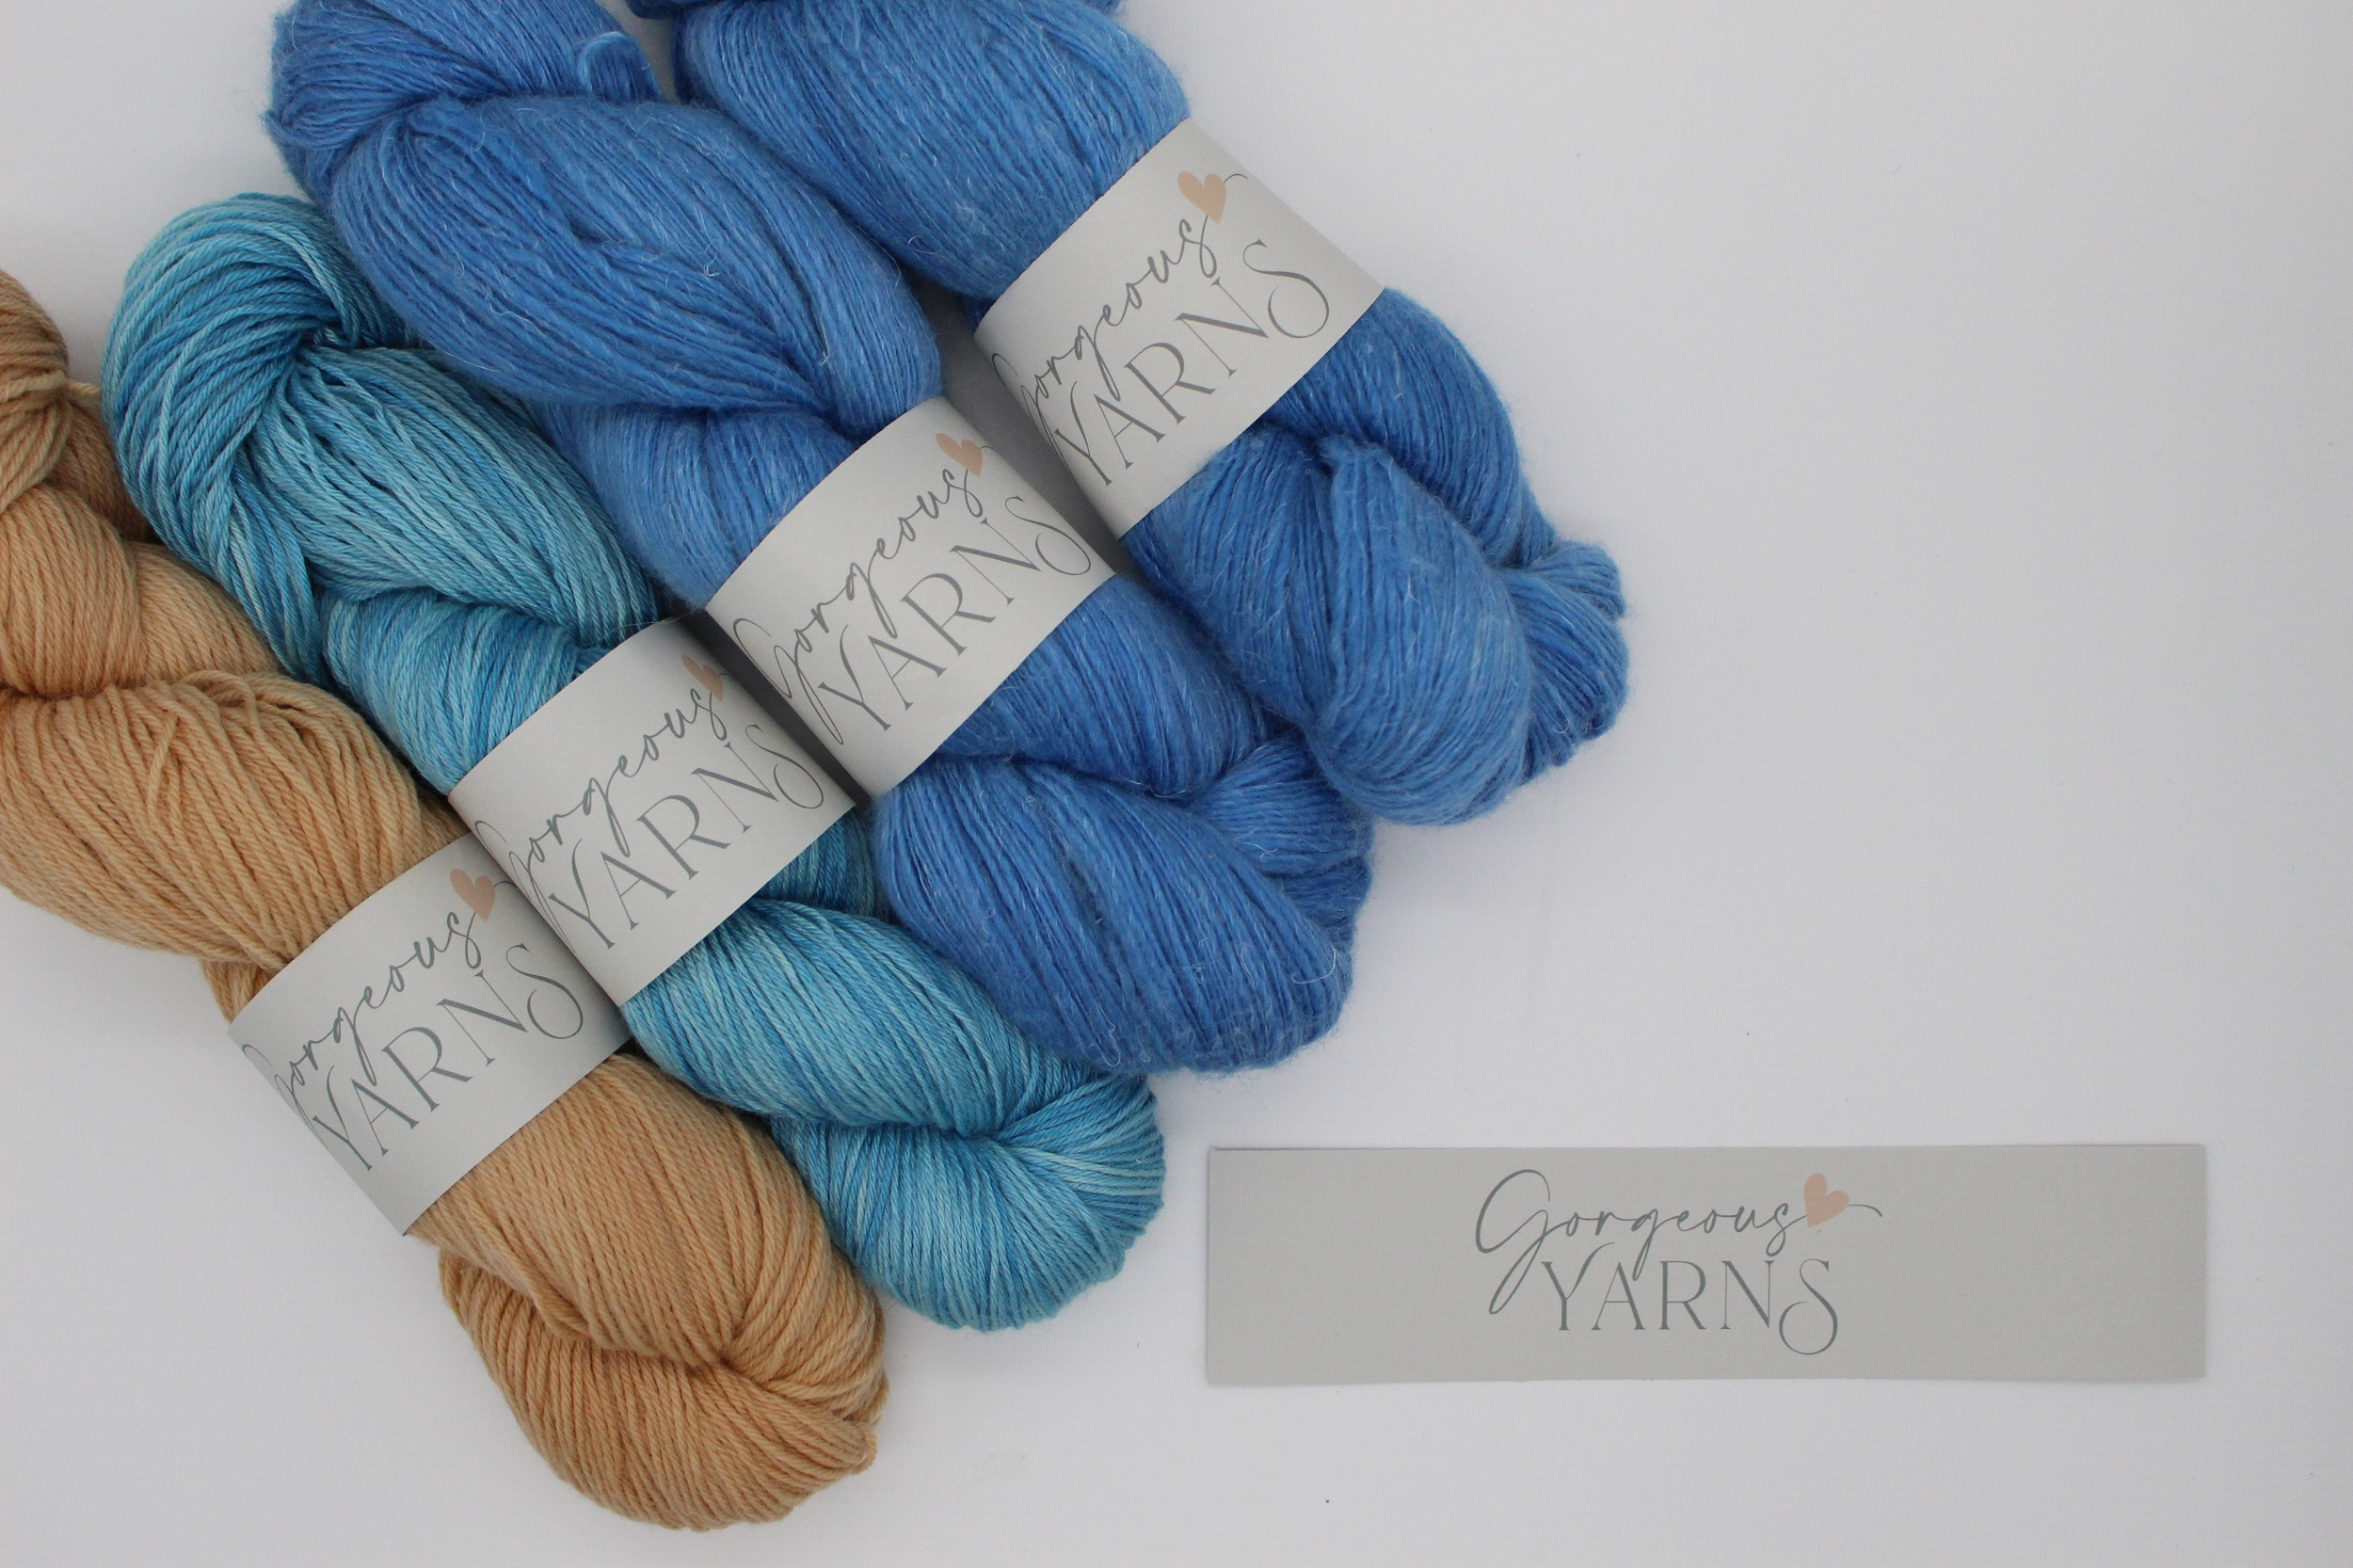 Sustianably dyed yarn